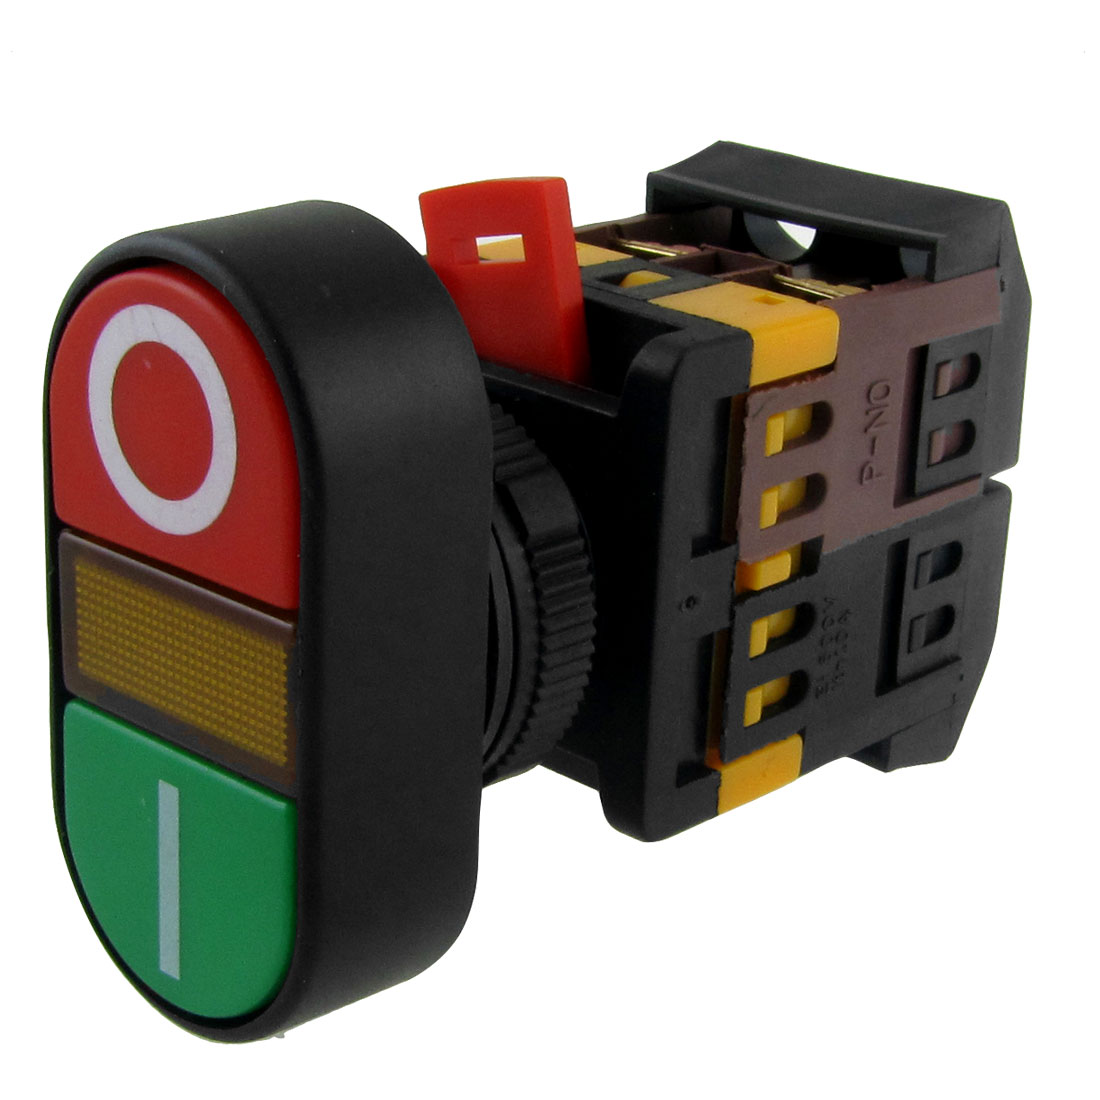 ON-OFF START STOP Push Button w Light Indicator Momentary Switch Red Green Power